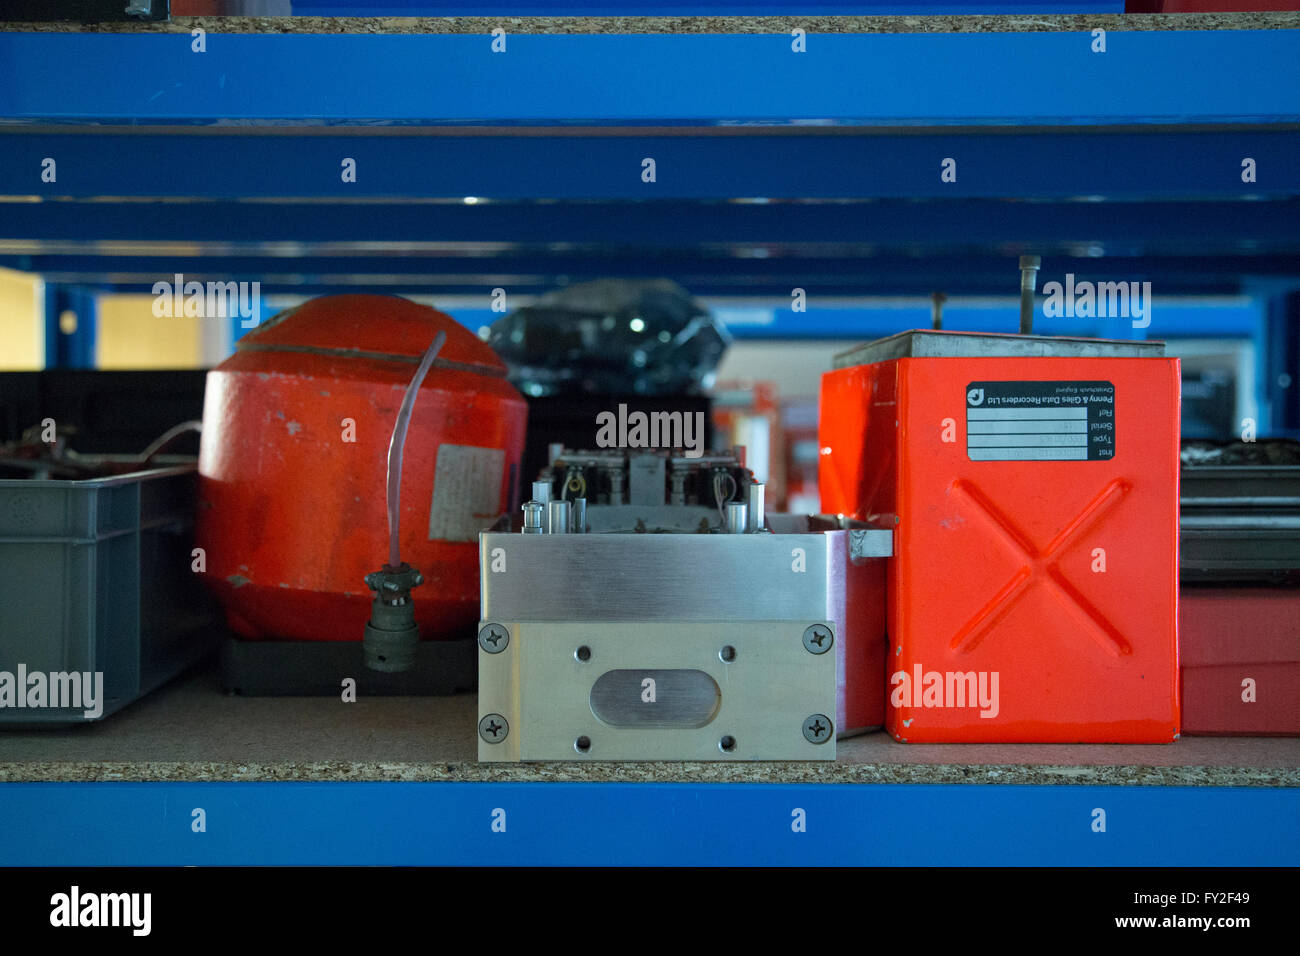 Black Box at the AAIB Aircraft Accident investigation Brach - Stock Image